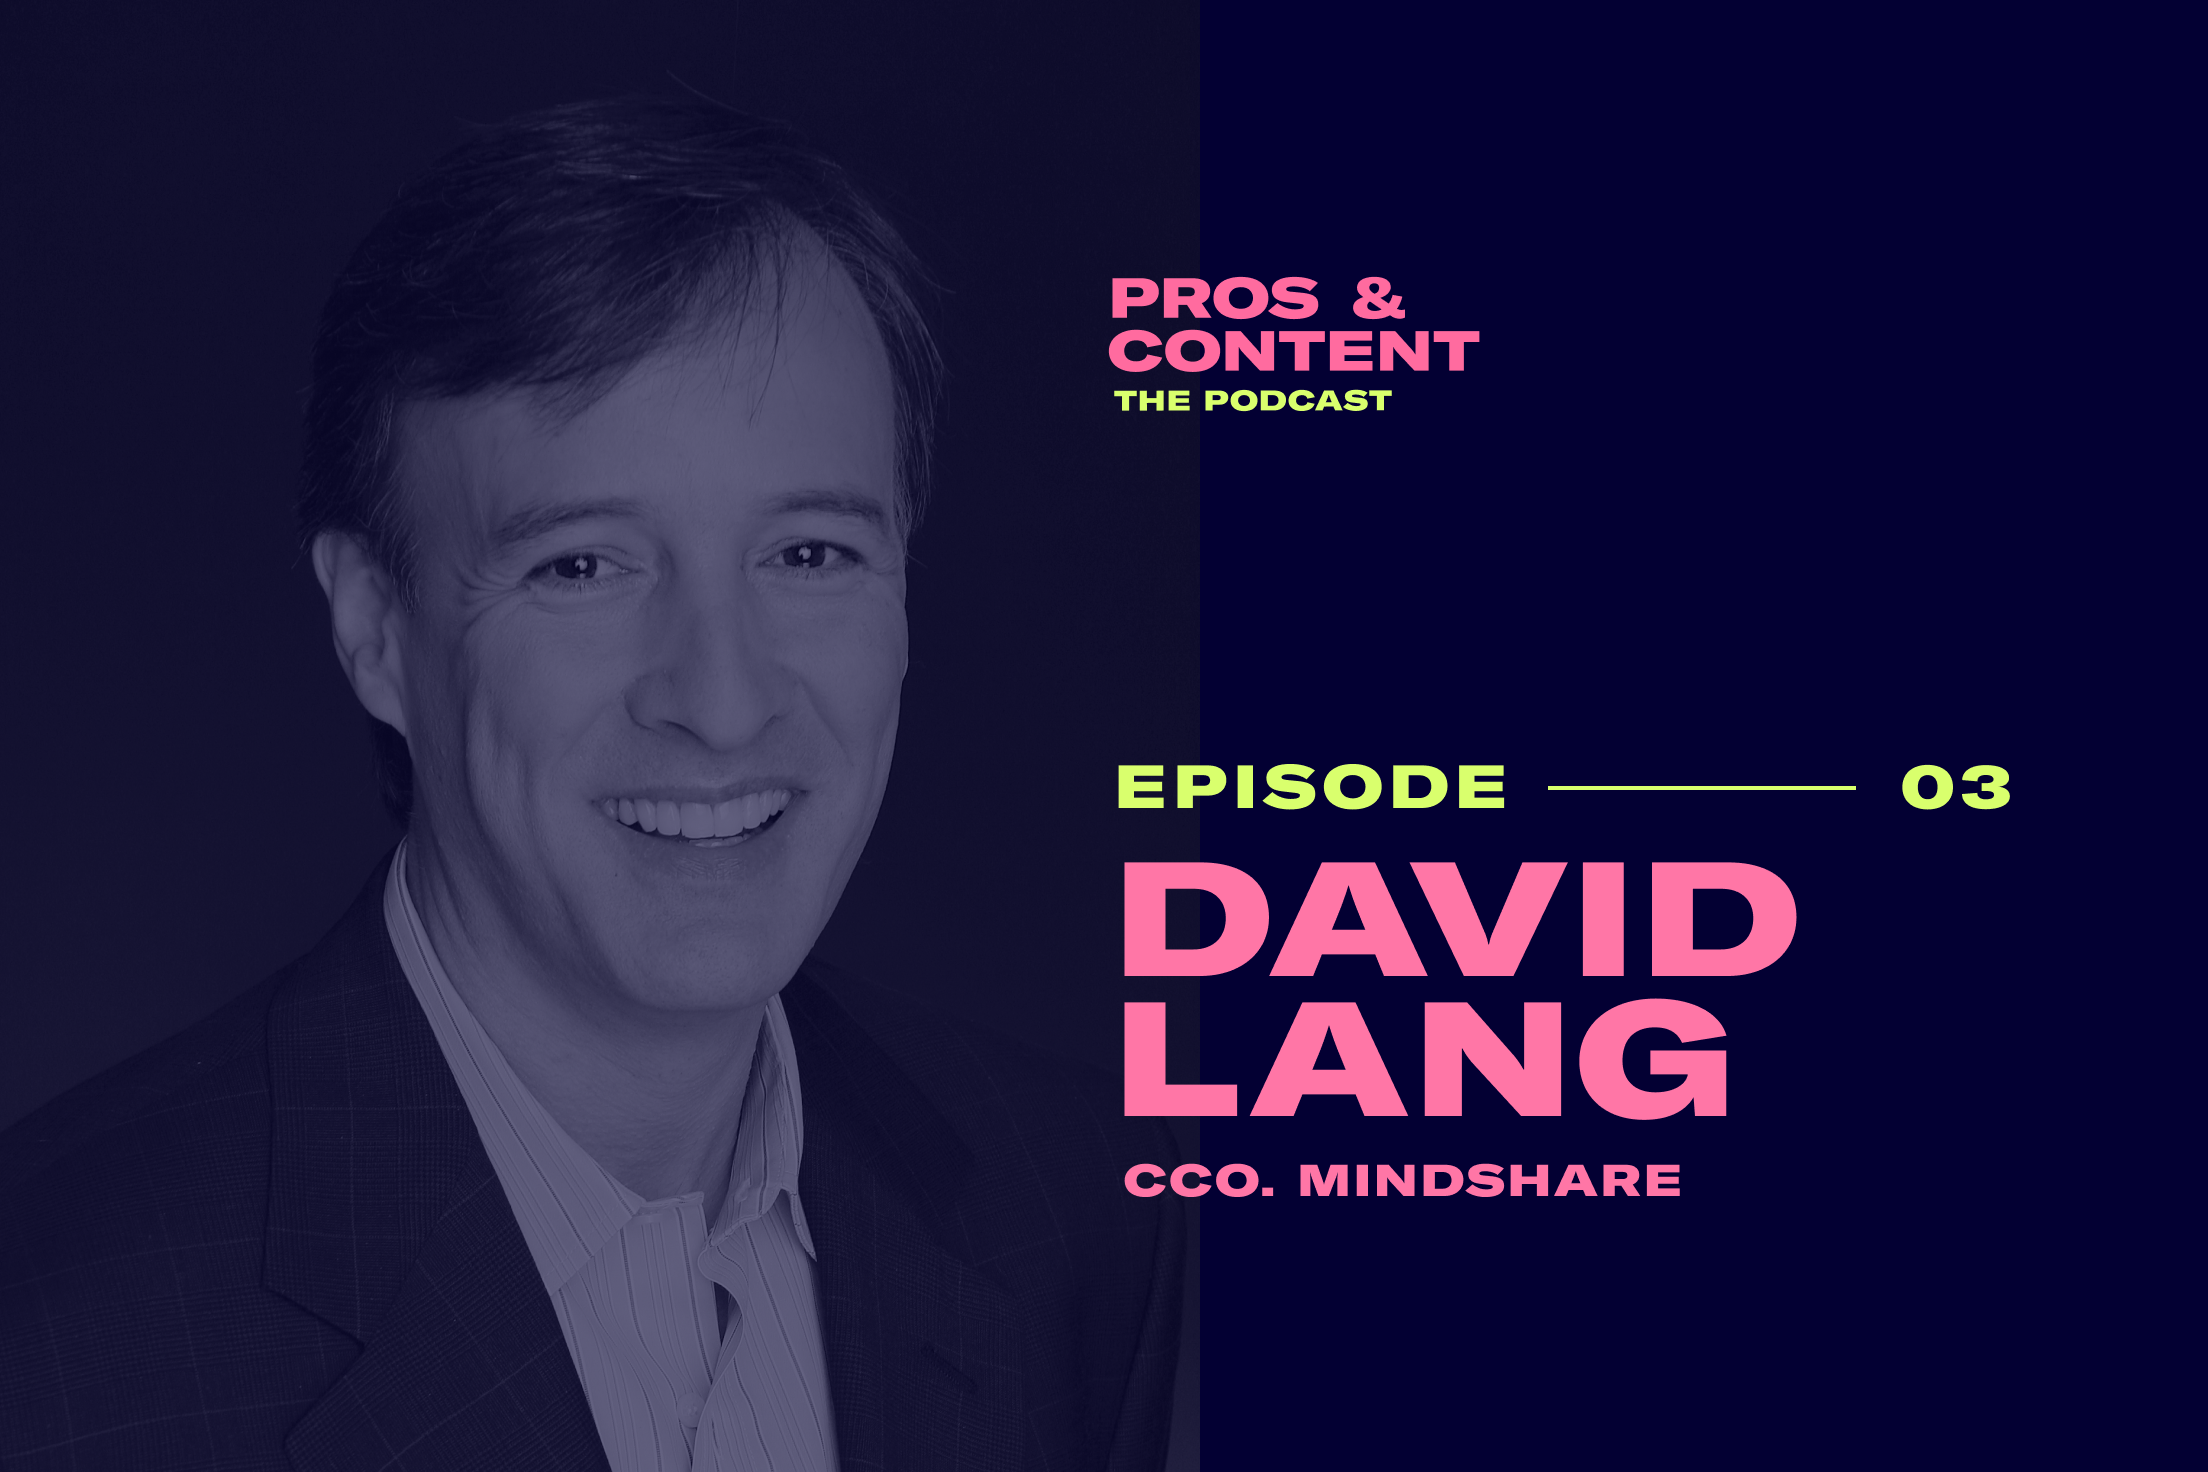 Pros & Content Podcast: David Lang on Content Marketing Agencies